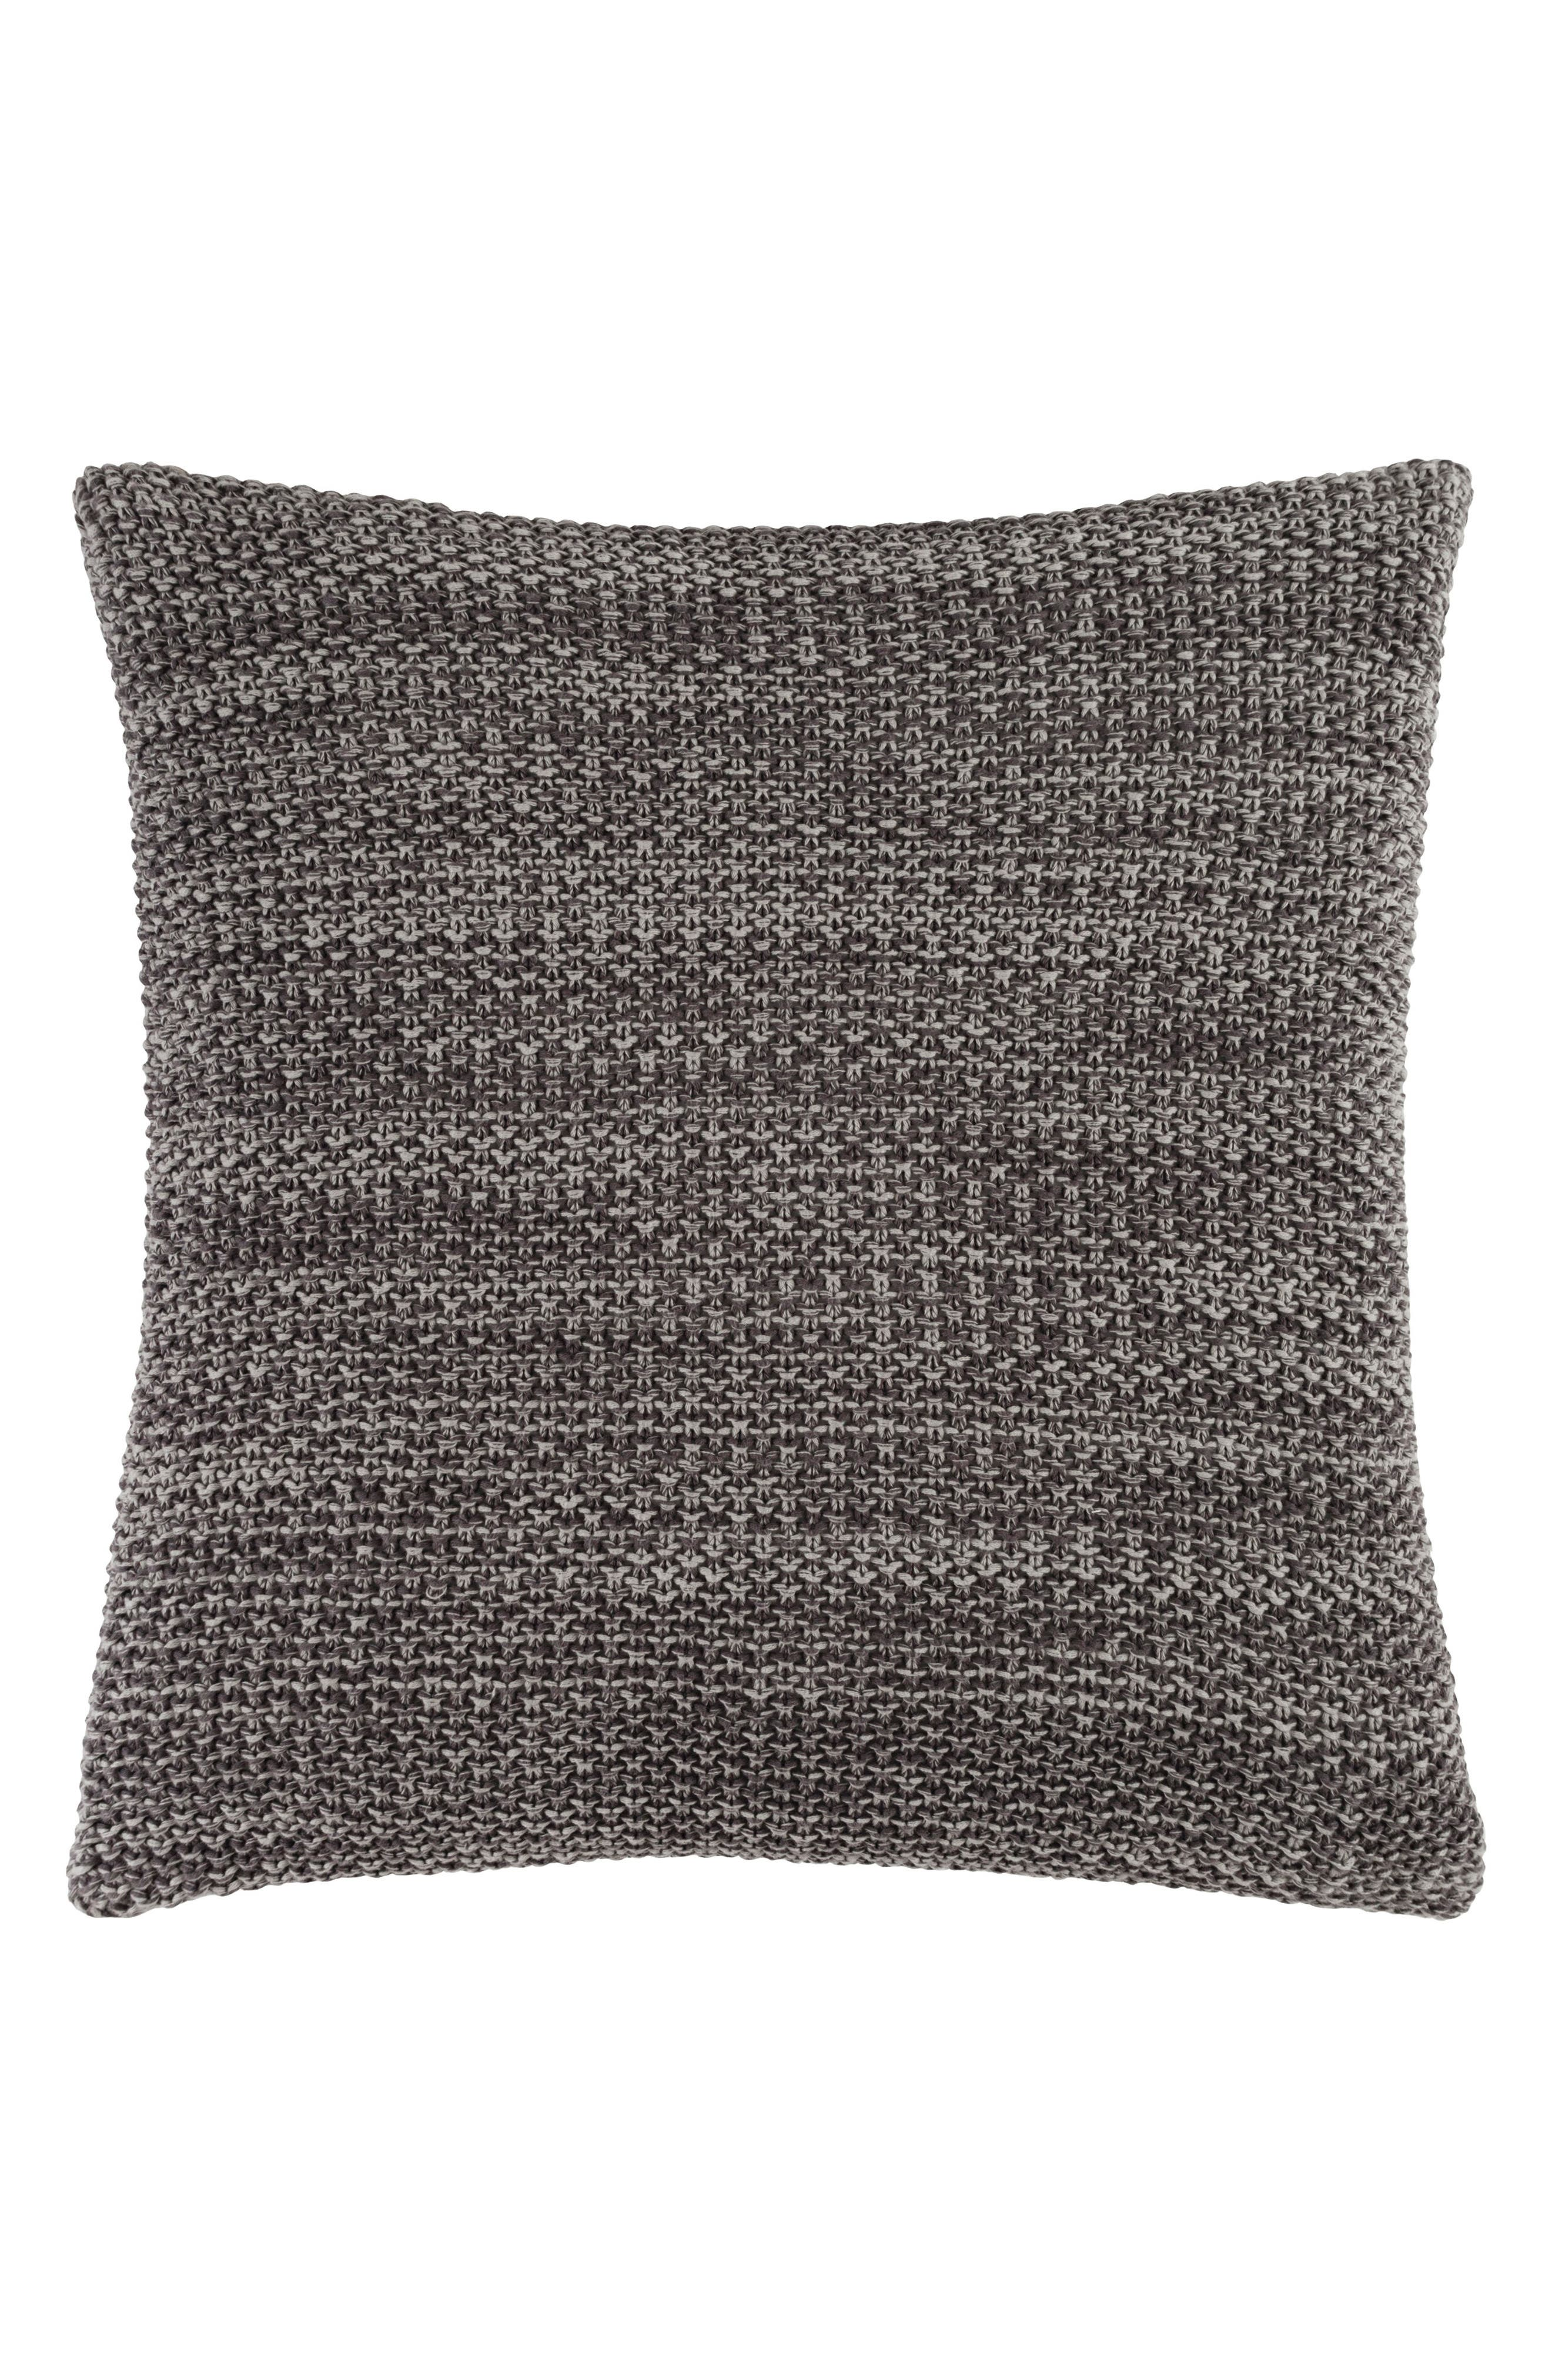 Orino Accent Pillow,                             Main thumbnail 1, color,                             Grey/ Charcoal